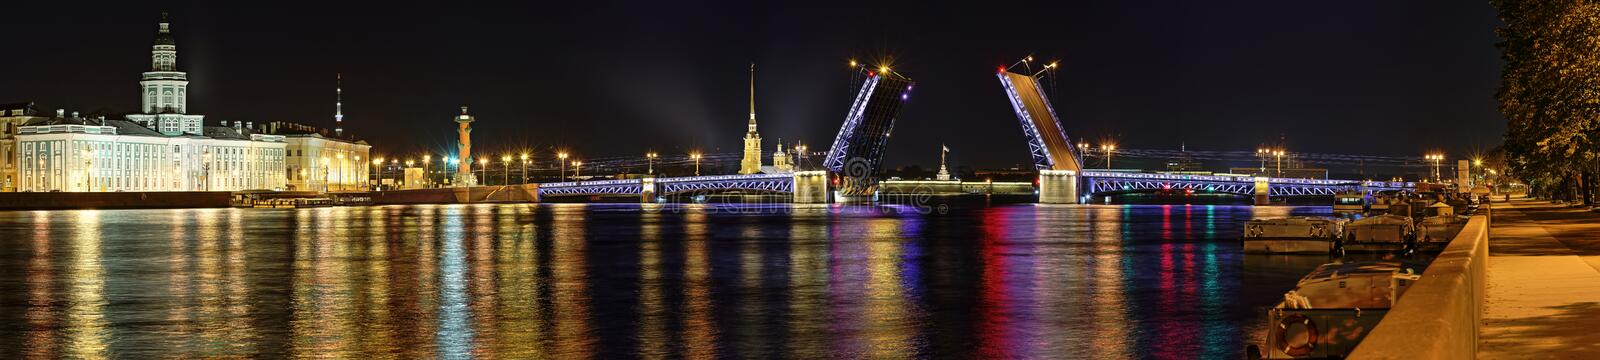 Panorama of the divorced Palace bridge in St. Petersburg royalty free stock image